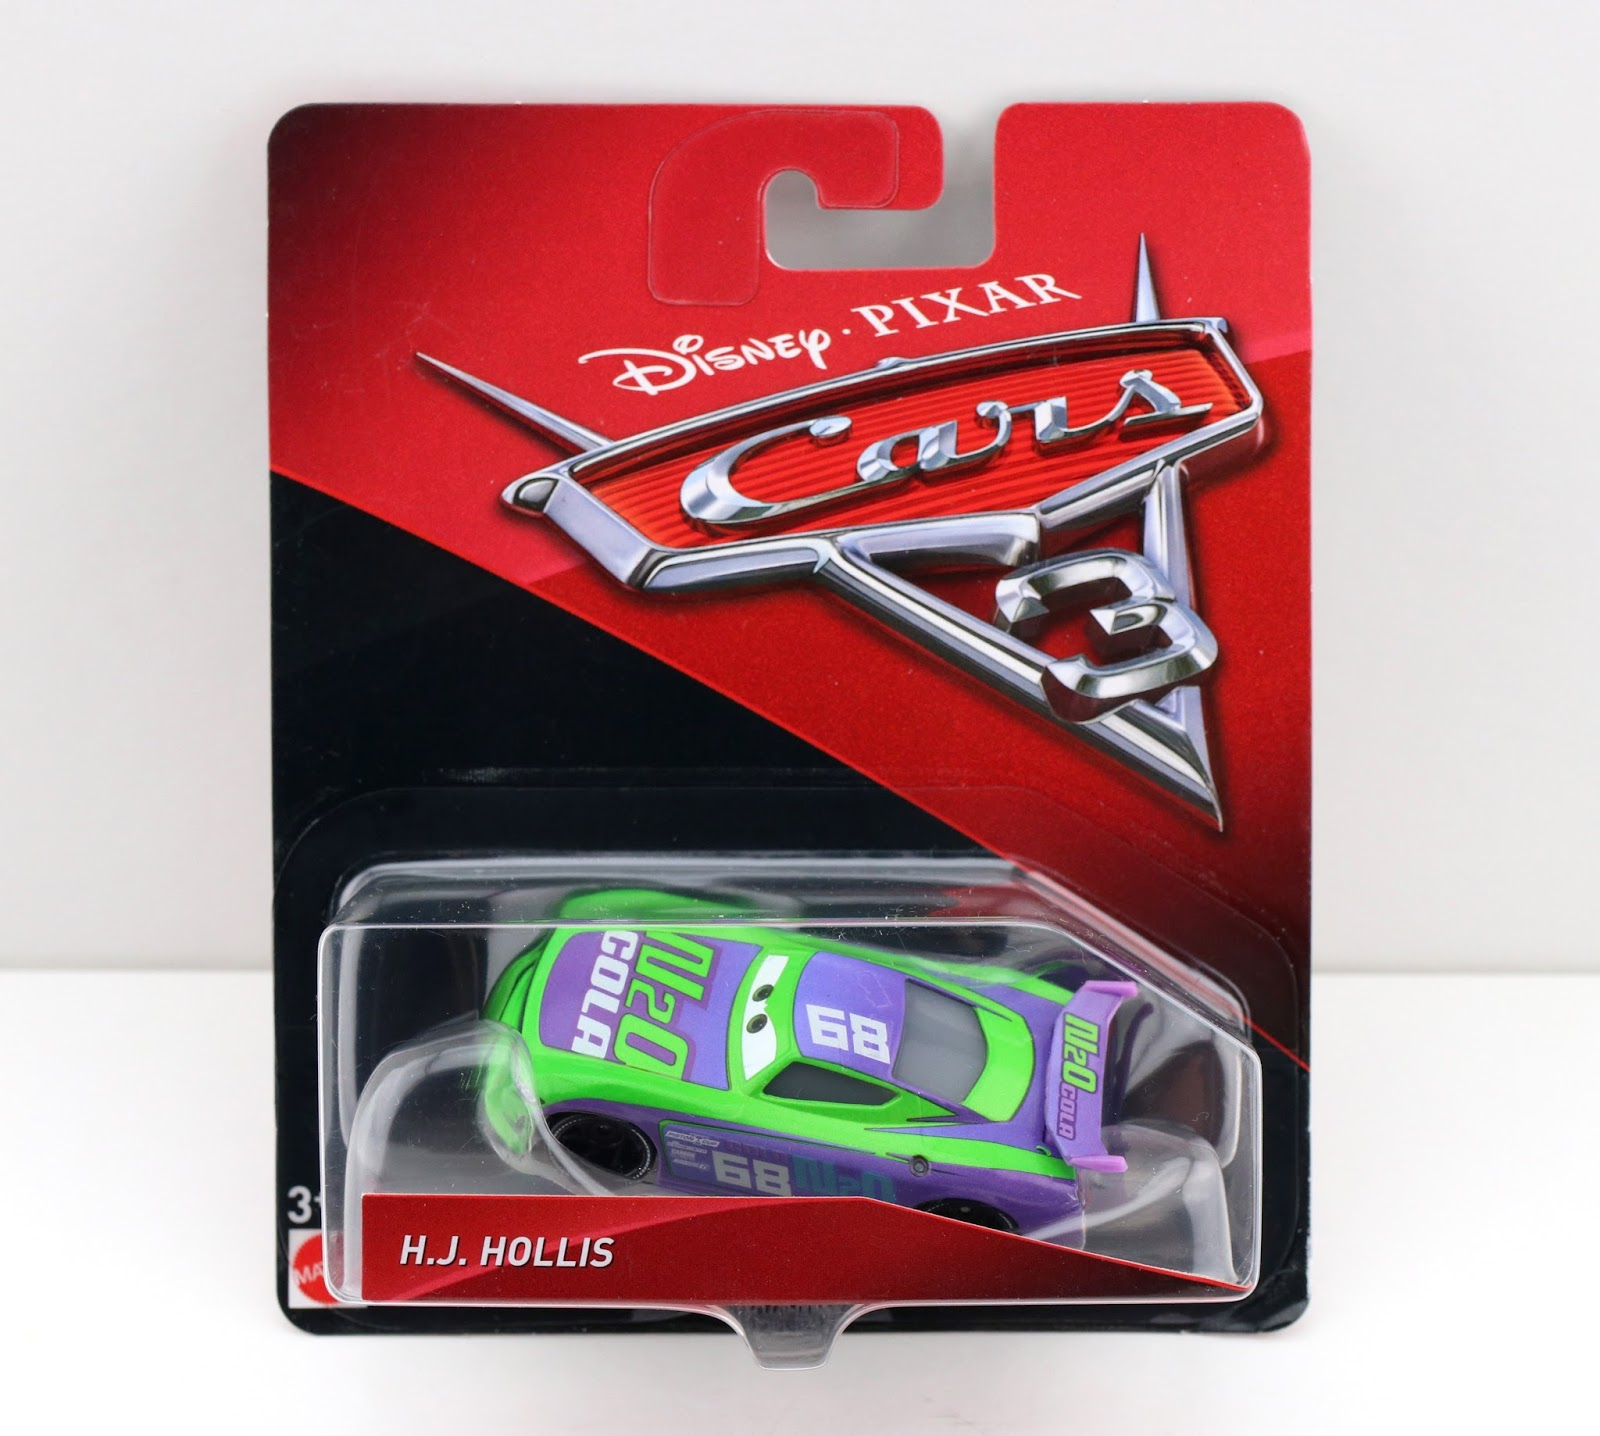 Cars 3 H.J. Hollis (N20 Cola) diecast